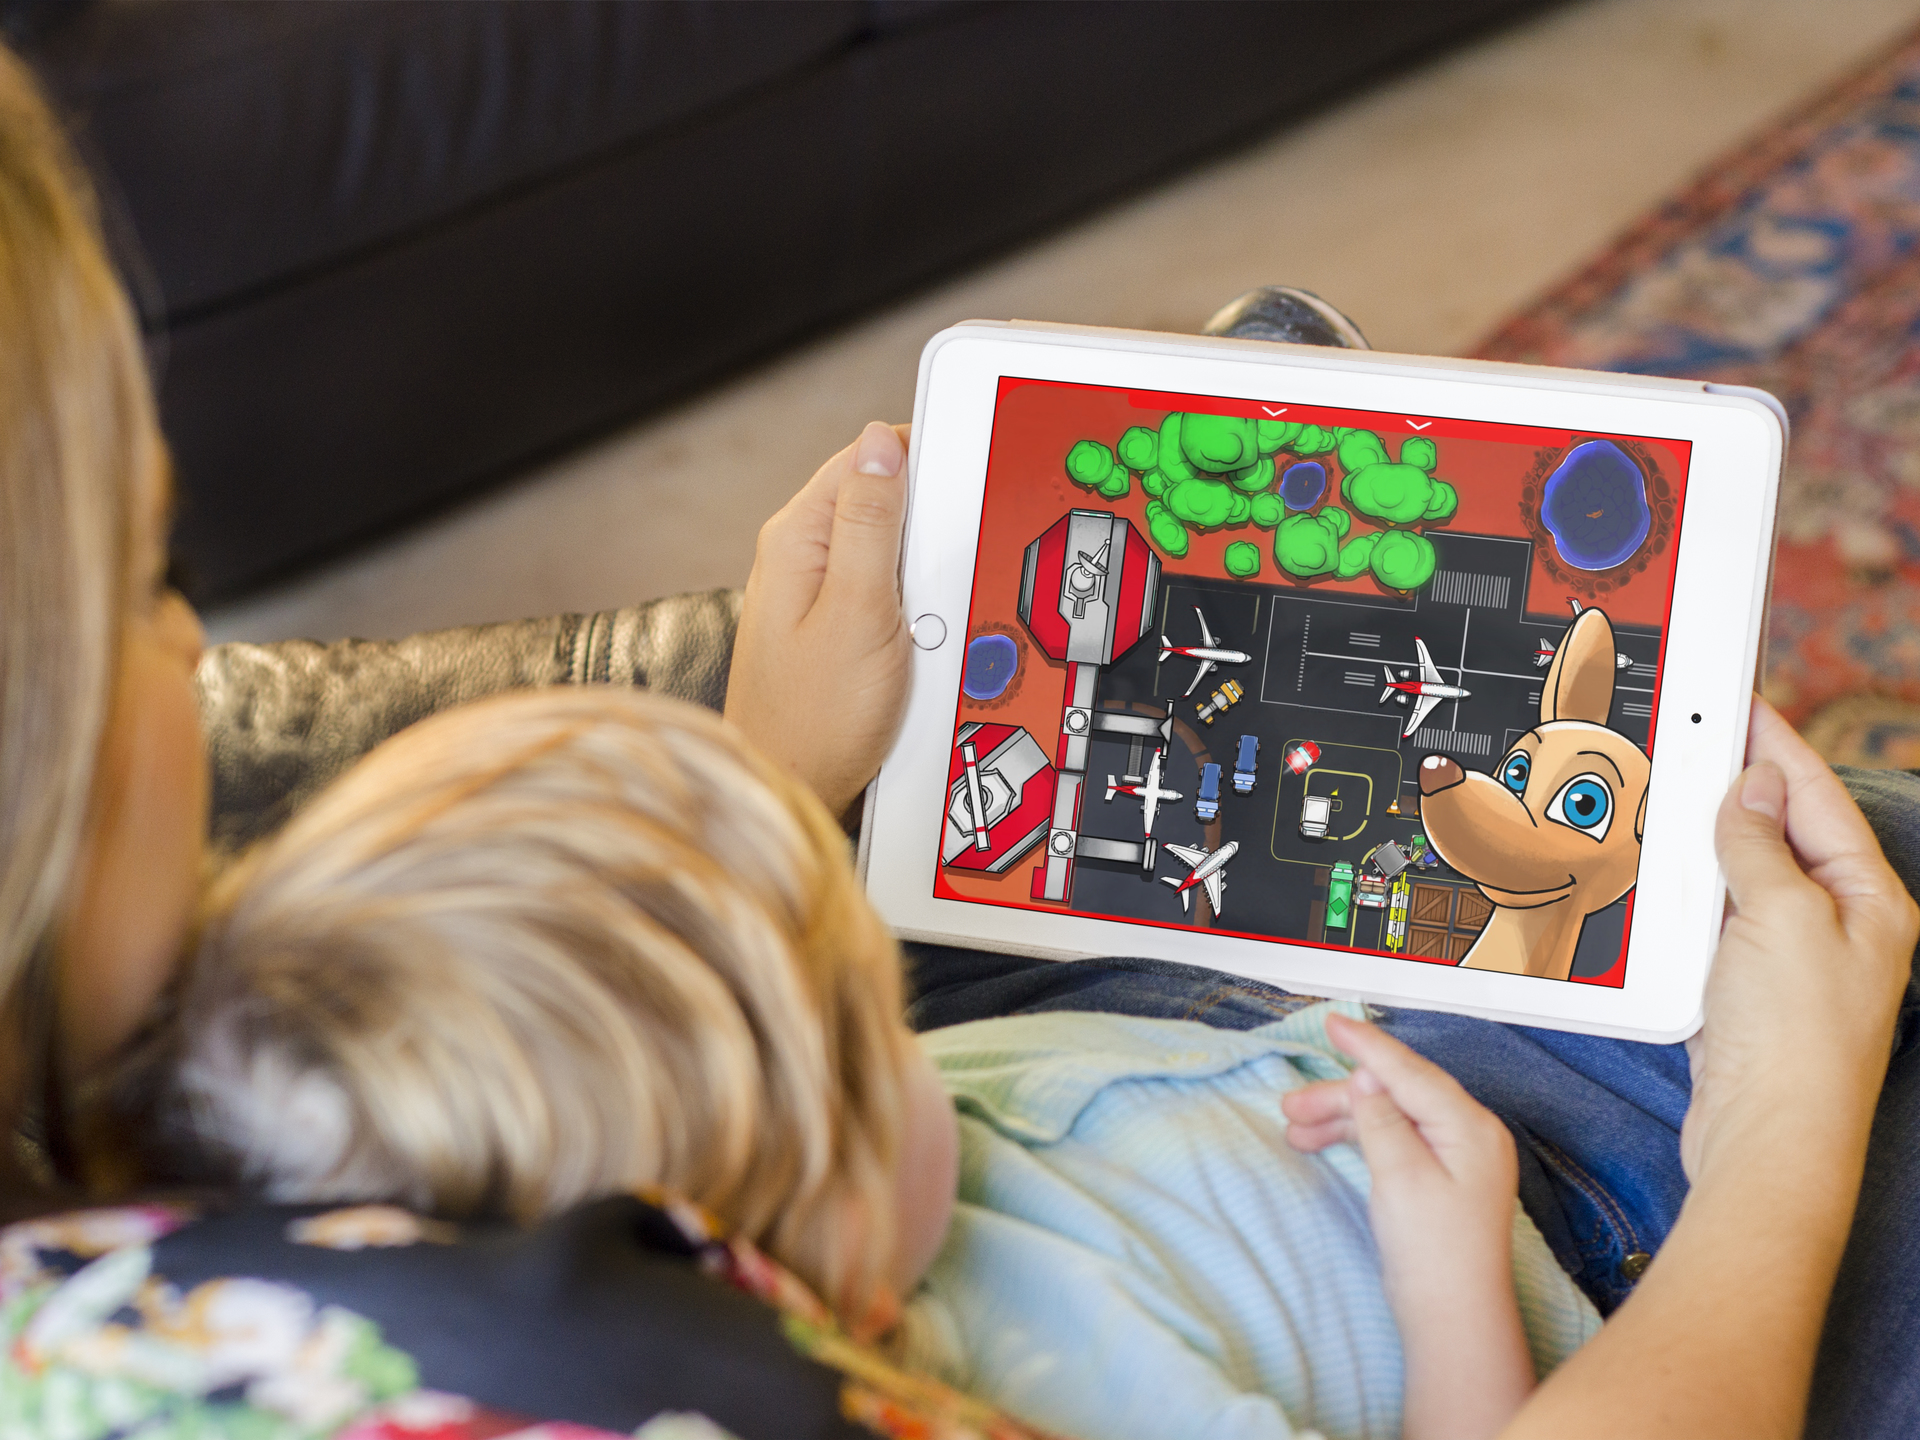 Qantas Joey Playbox - We worked with Qantas to build the Joey Playbox, a free game designed for children 4 to 8 years old to play creatively and freely.We worked closely with Qantas to adhere to their brand guidelines and image, while building a fun, engaging game for children that encourages creativity and creation.iPad Game / Built with Unity